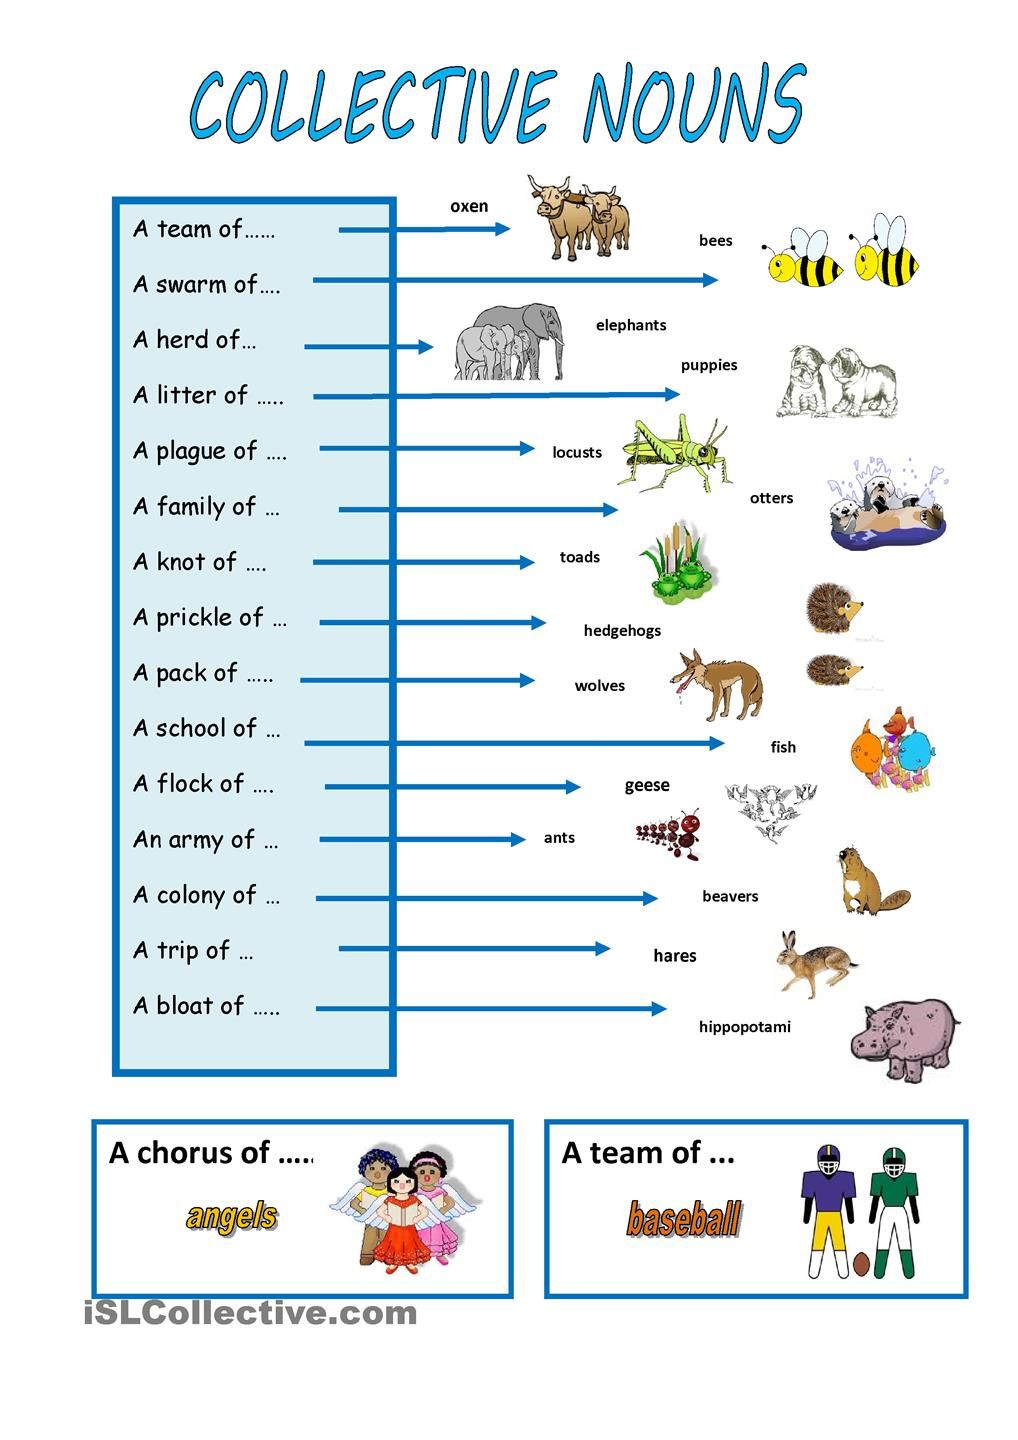 animal collective nouns Google Search Collective nouns